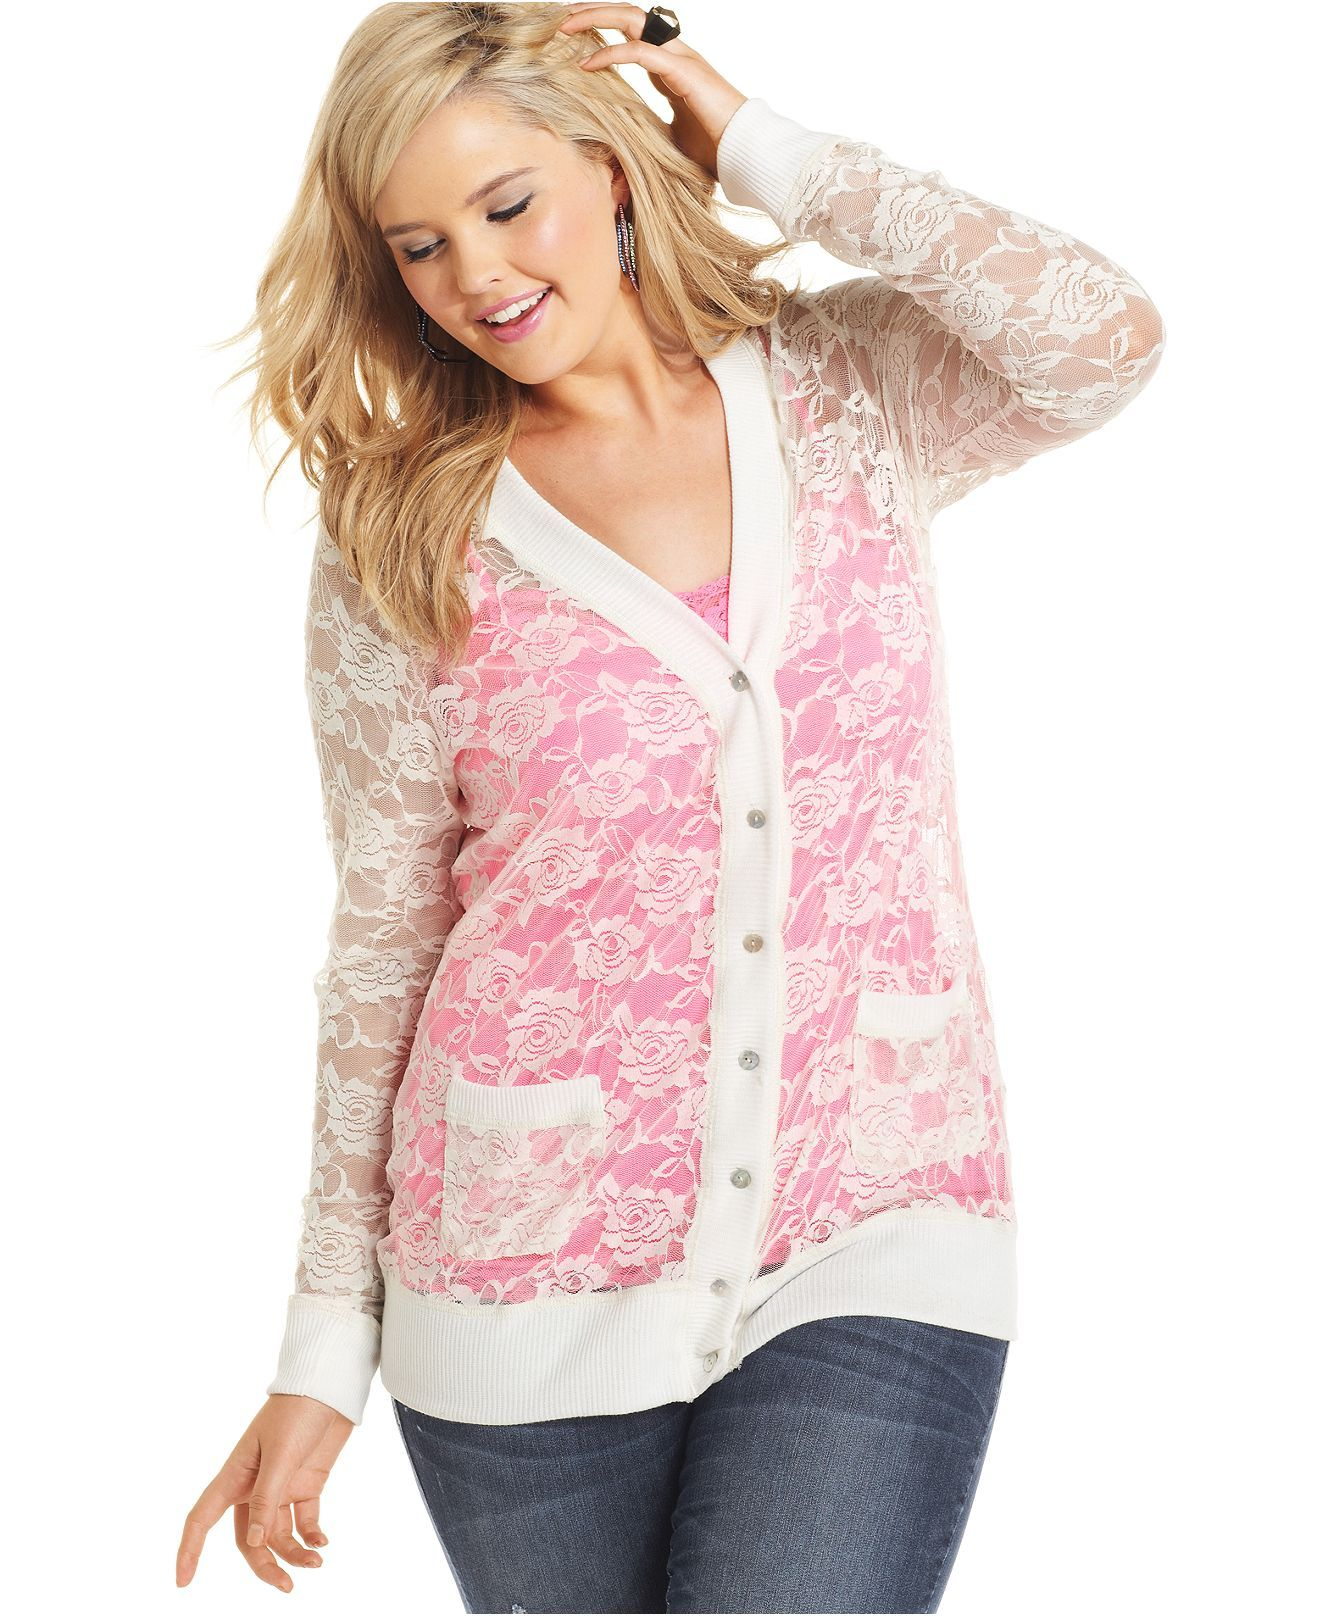 Belle Du Jour Plus Size Cardigan, Long-Sleeve Lace - Plus Size ...